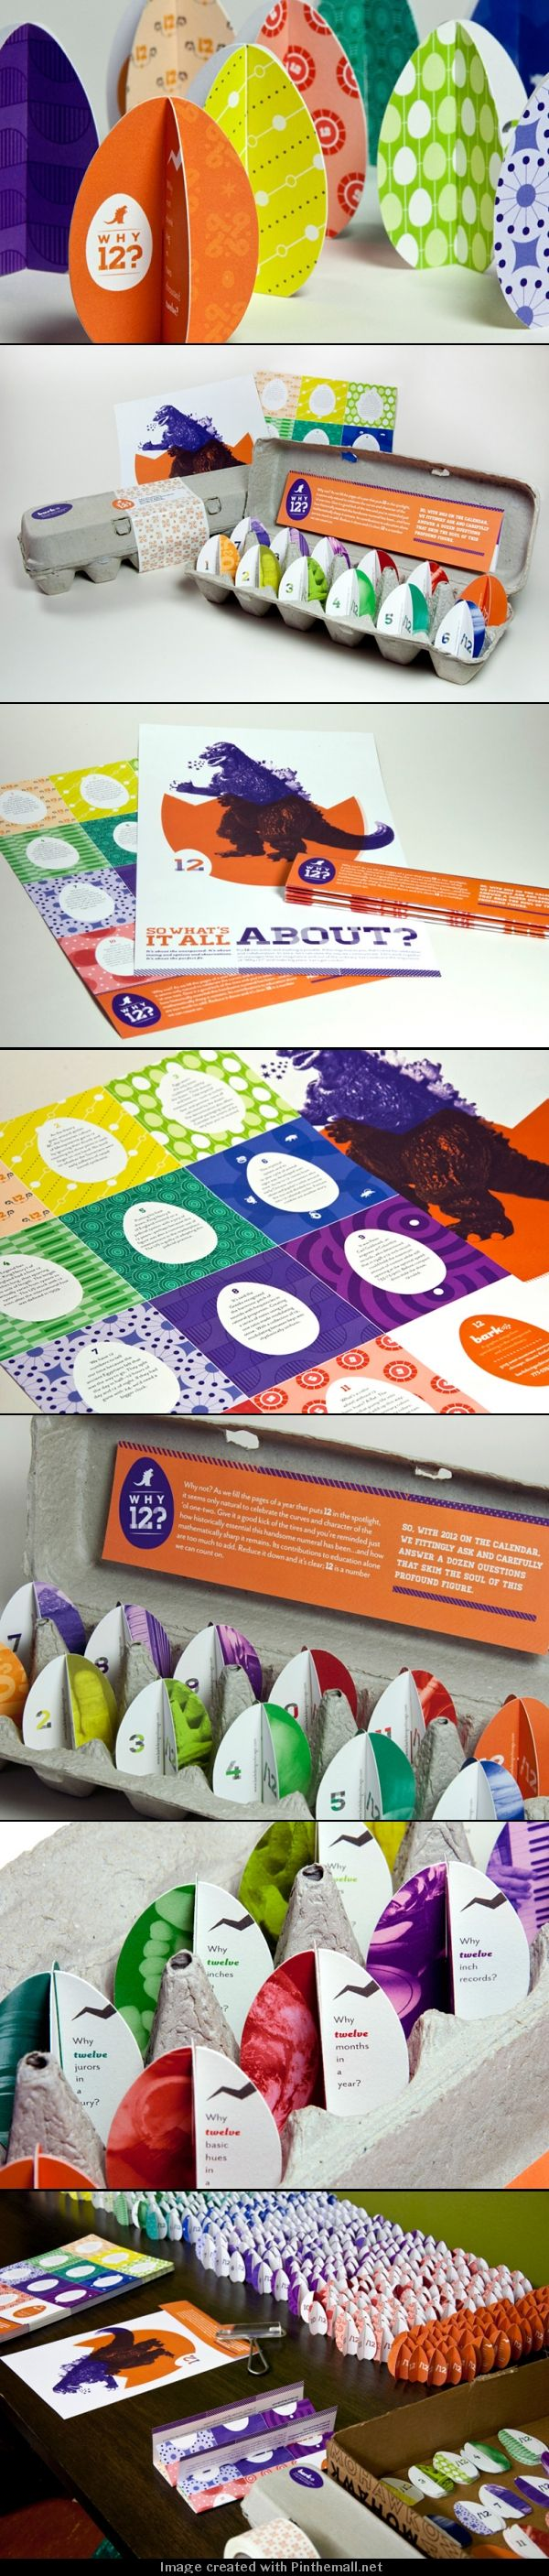 Color and intrigue serve up a one-two punch in Bark's 2012 self-promotion package